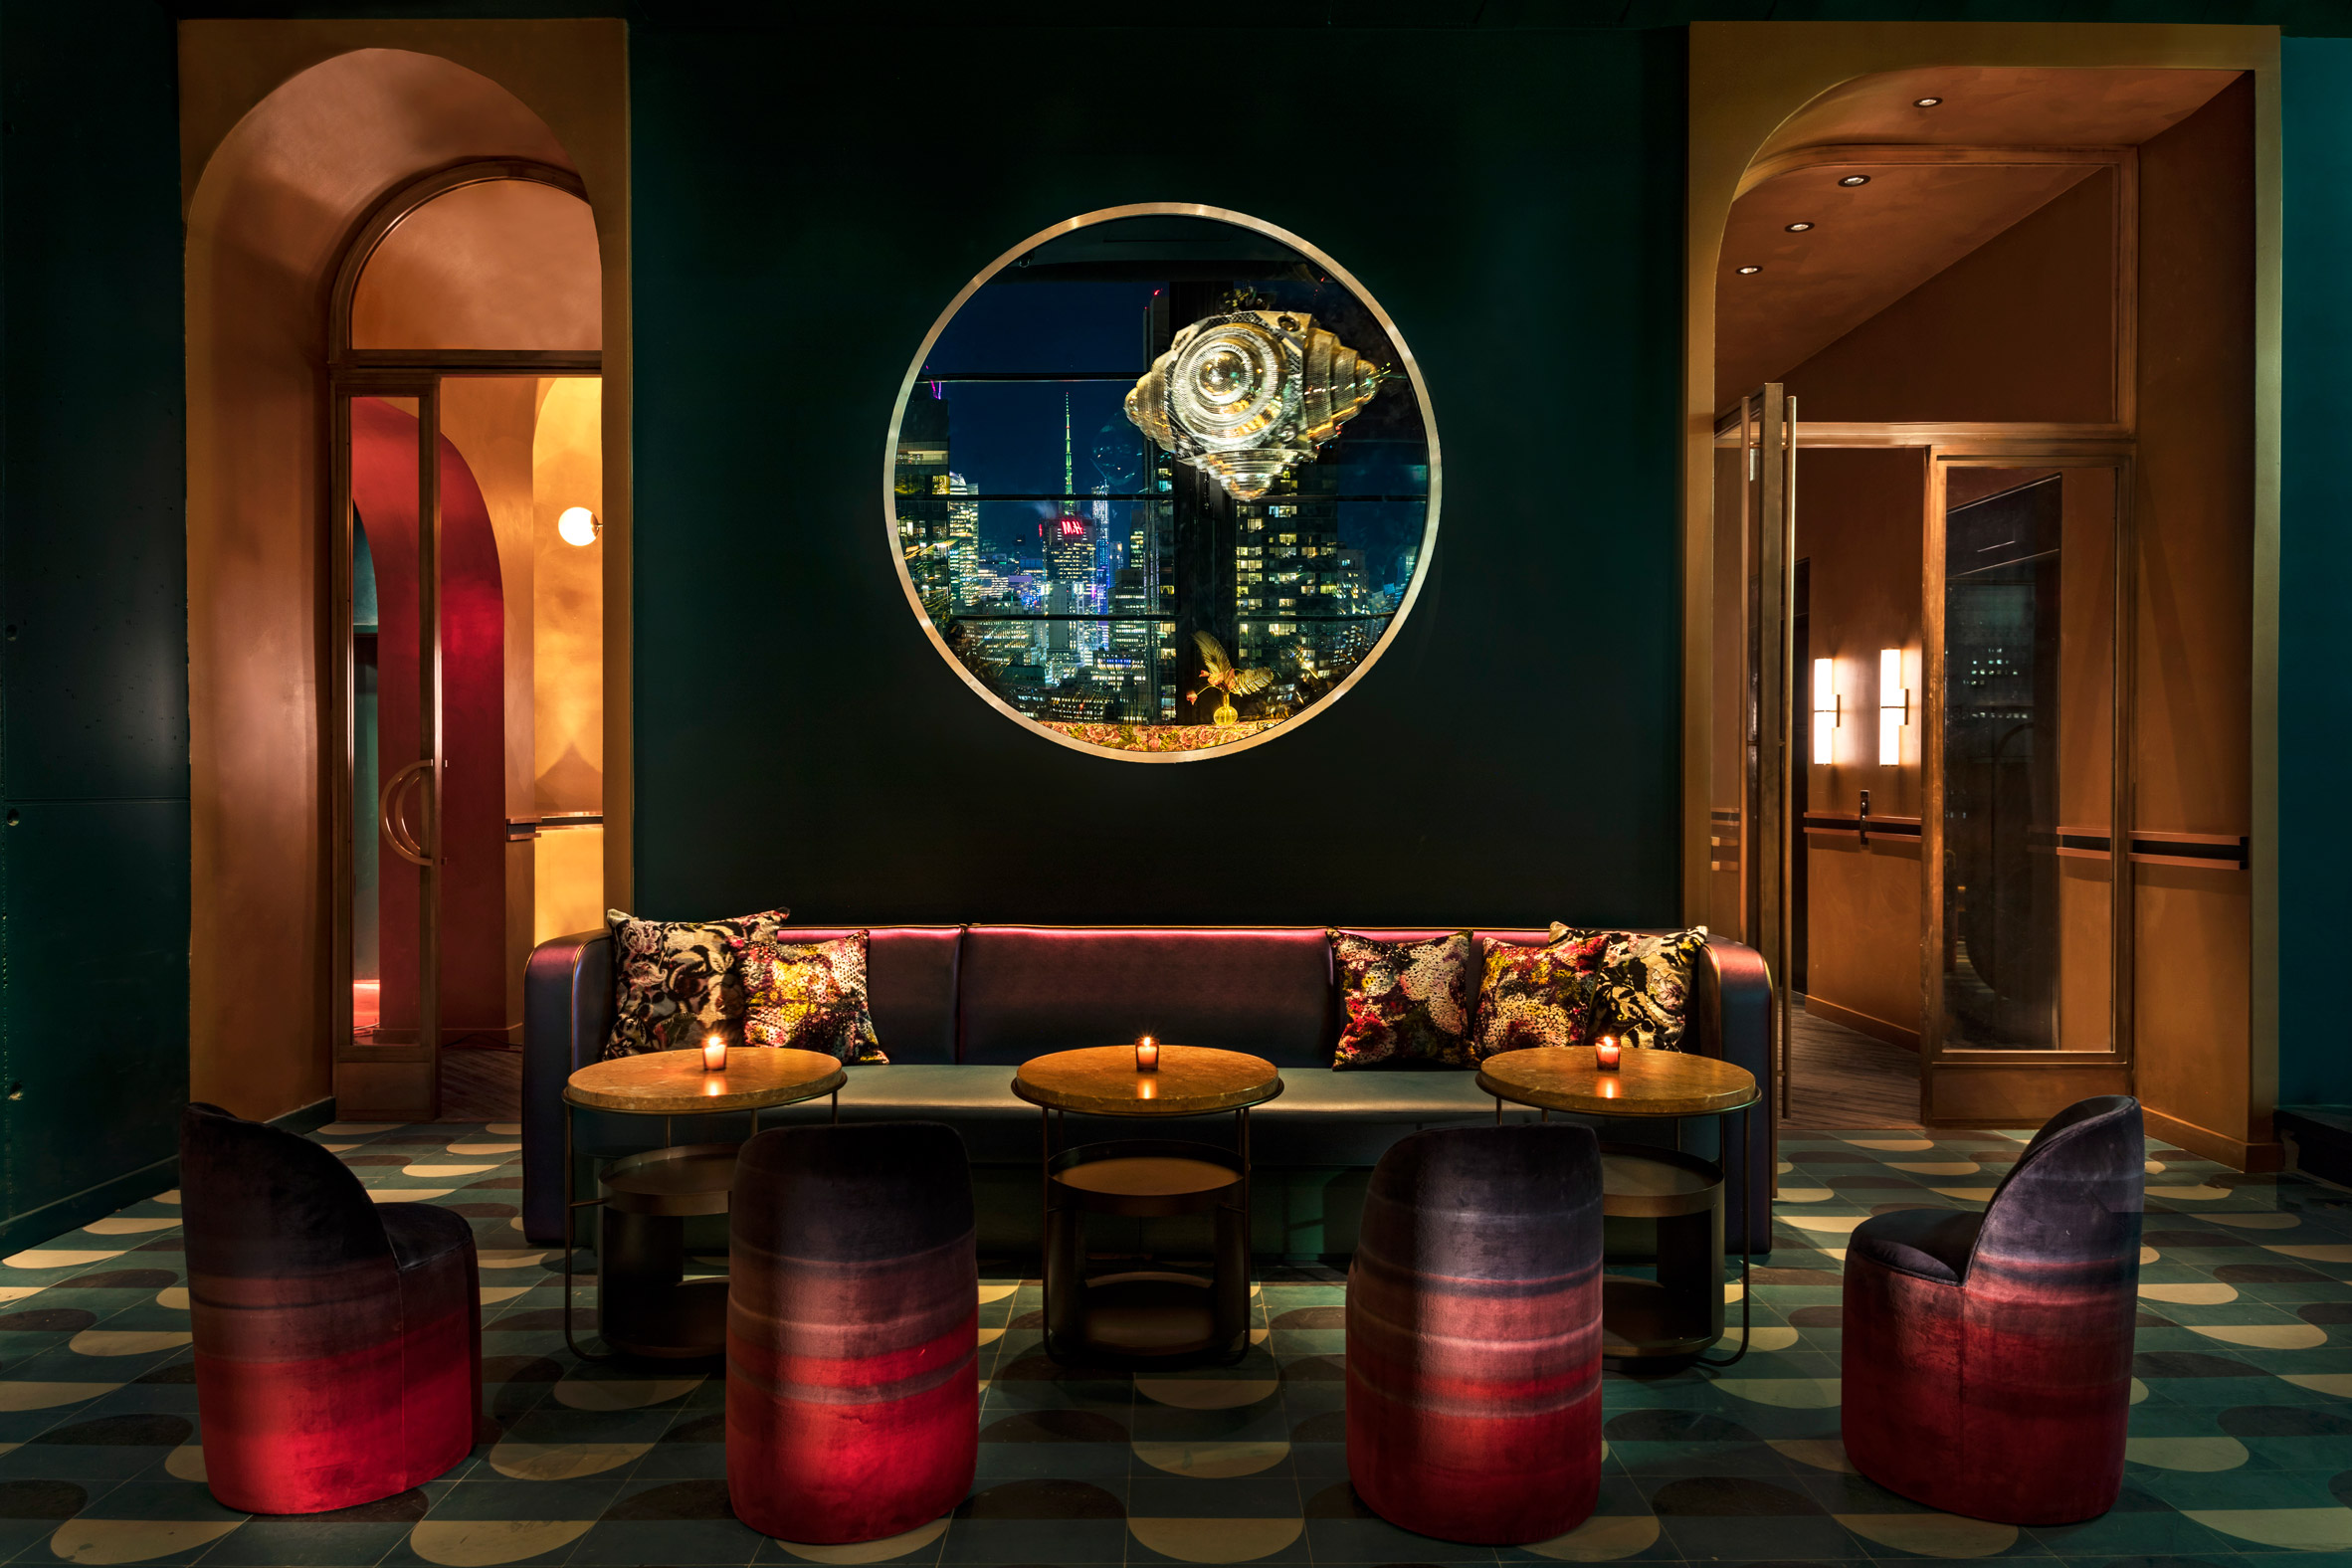 yabu pushelberg Yabu Pushelberg and Rockwell Group Bring Nature Inside NYC Hotel Yabu Pushelberg and Rockwell Group Bring Nature Inside NYC Hotel 5